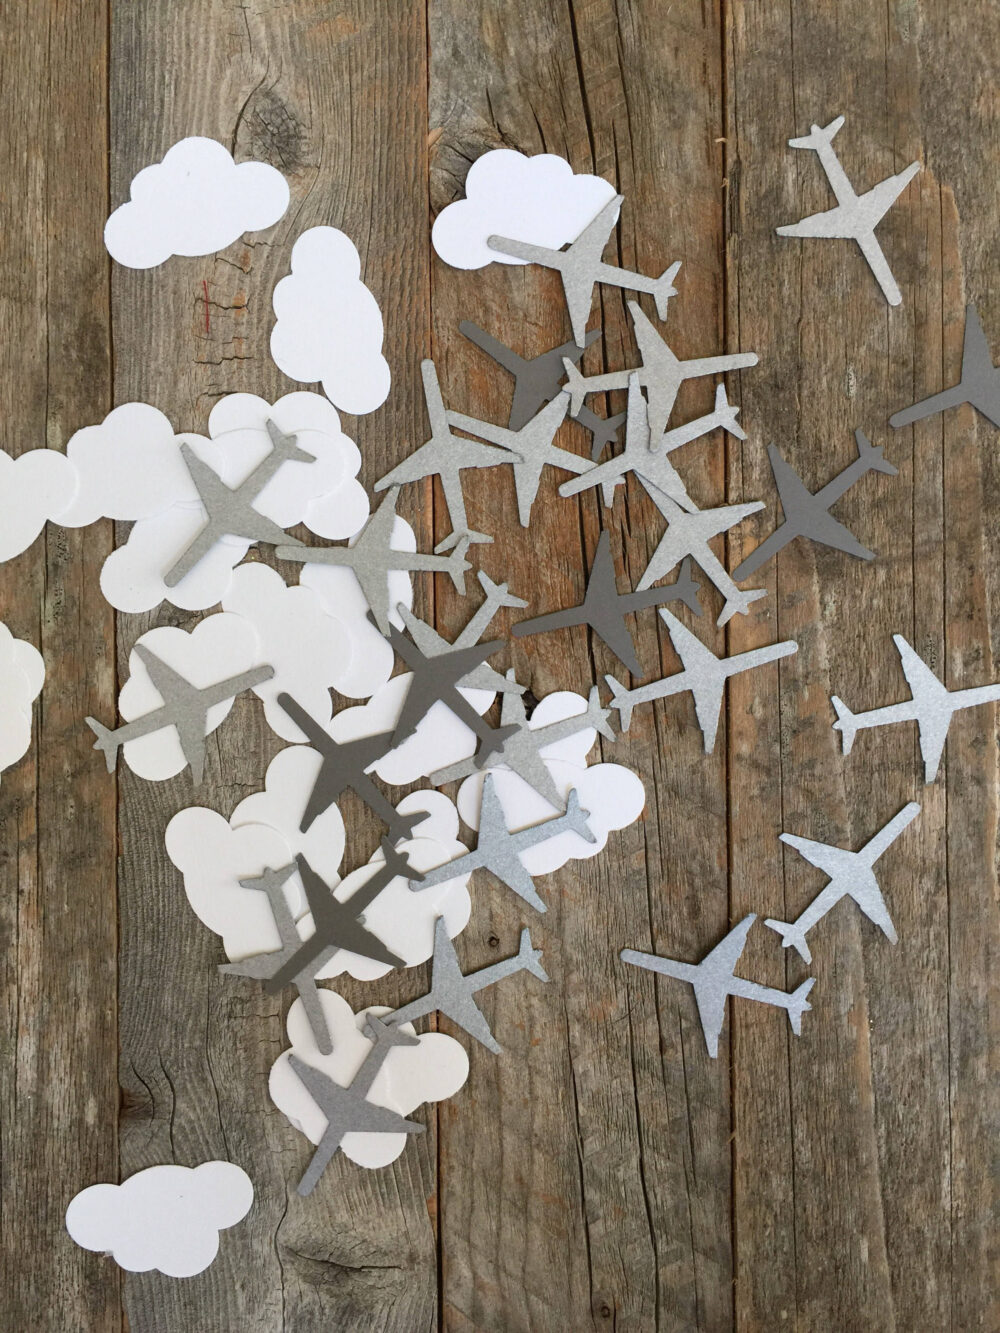 100 Airplanes & Clouds Table Scatter Confetti For Aviation Themed Weddings Parties Birthday Now Pieces